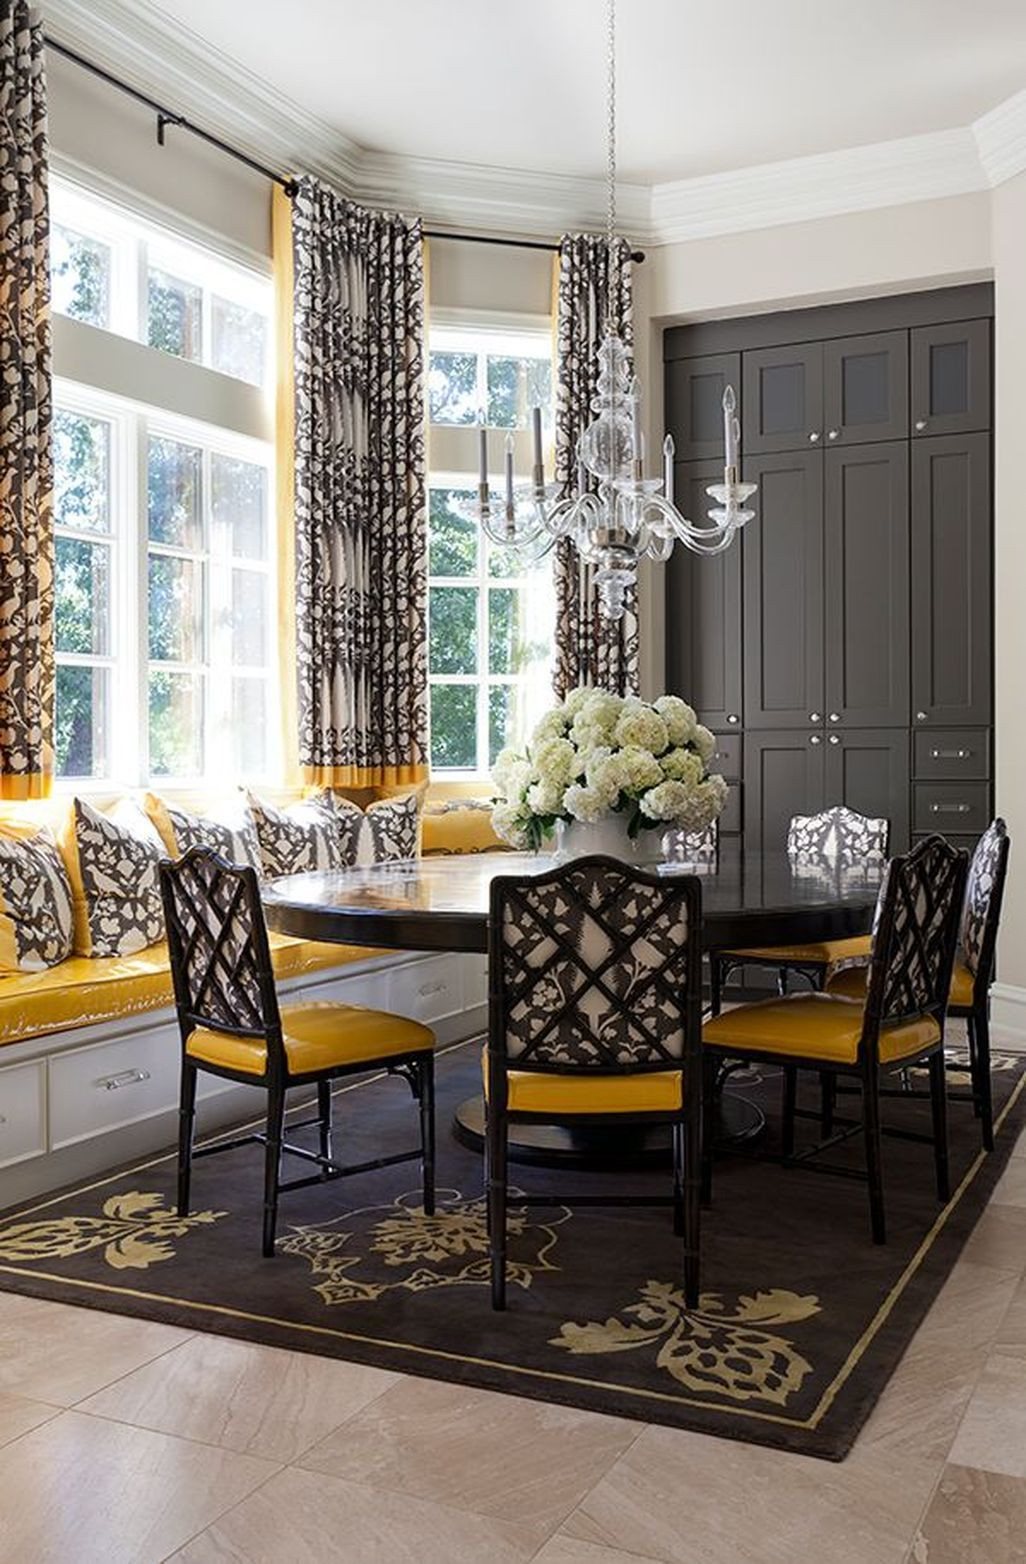 Black and Gold Dining Room Ideas 43 Luxurious Black and Gold Dining Room Ideas for